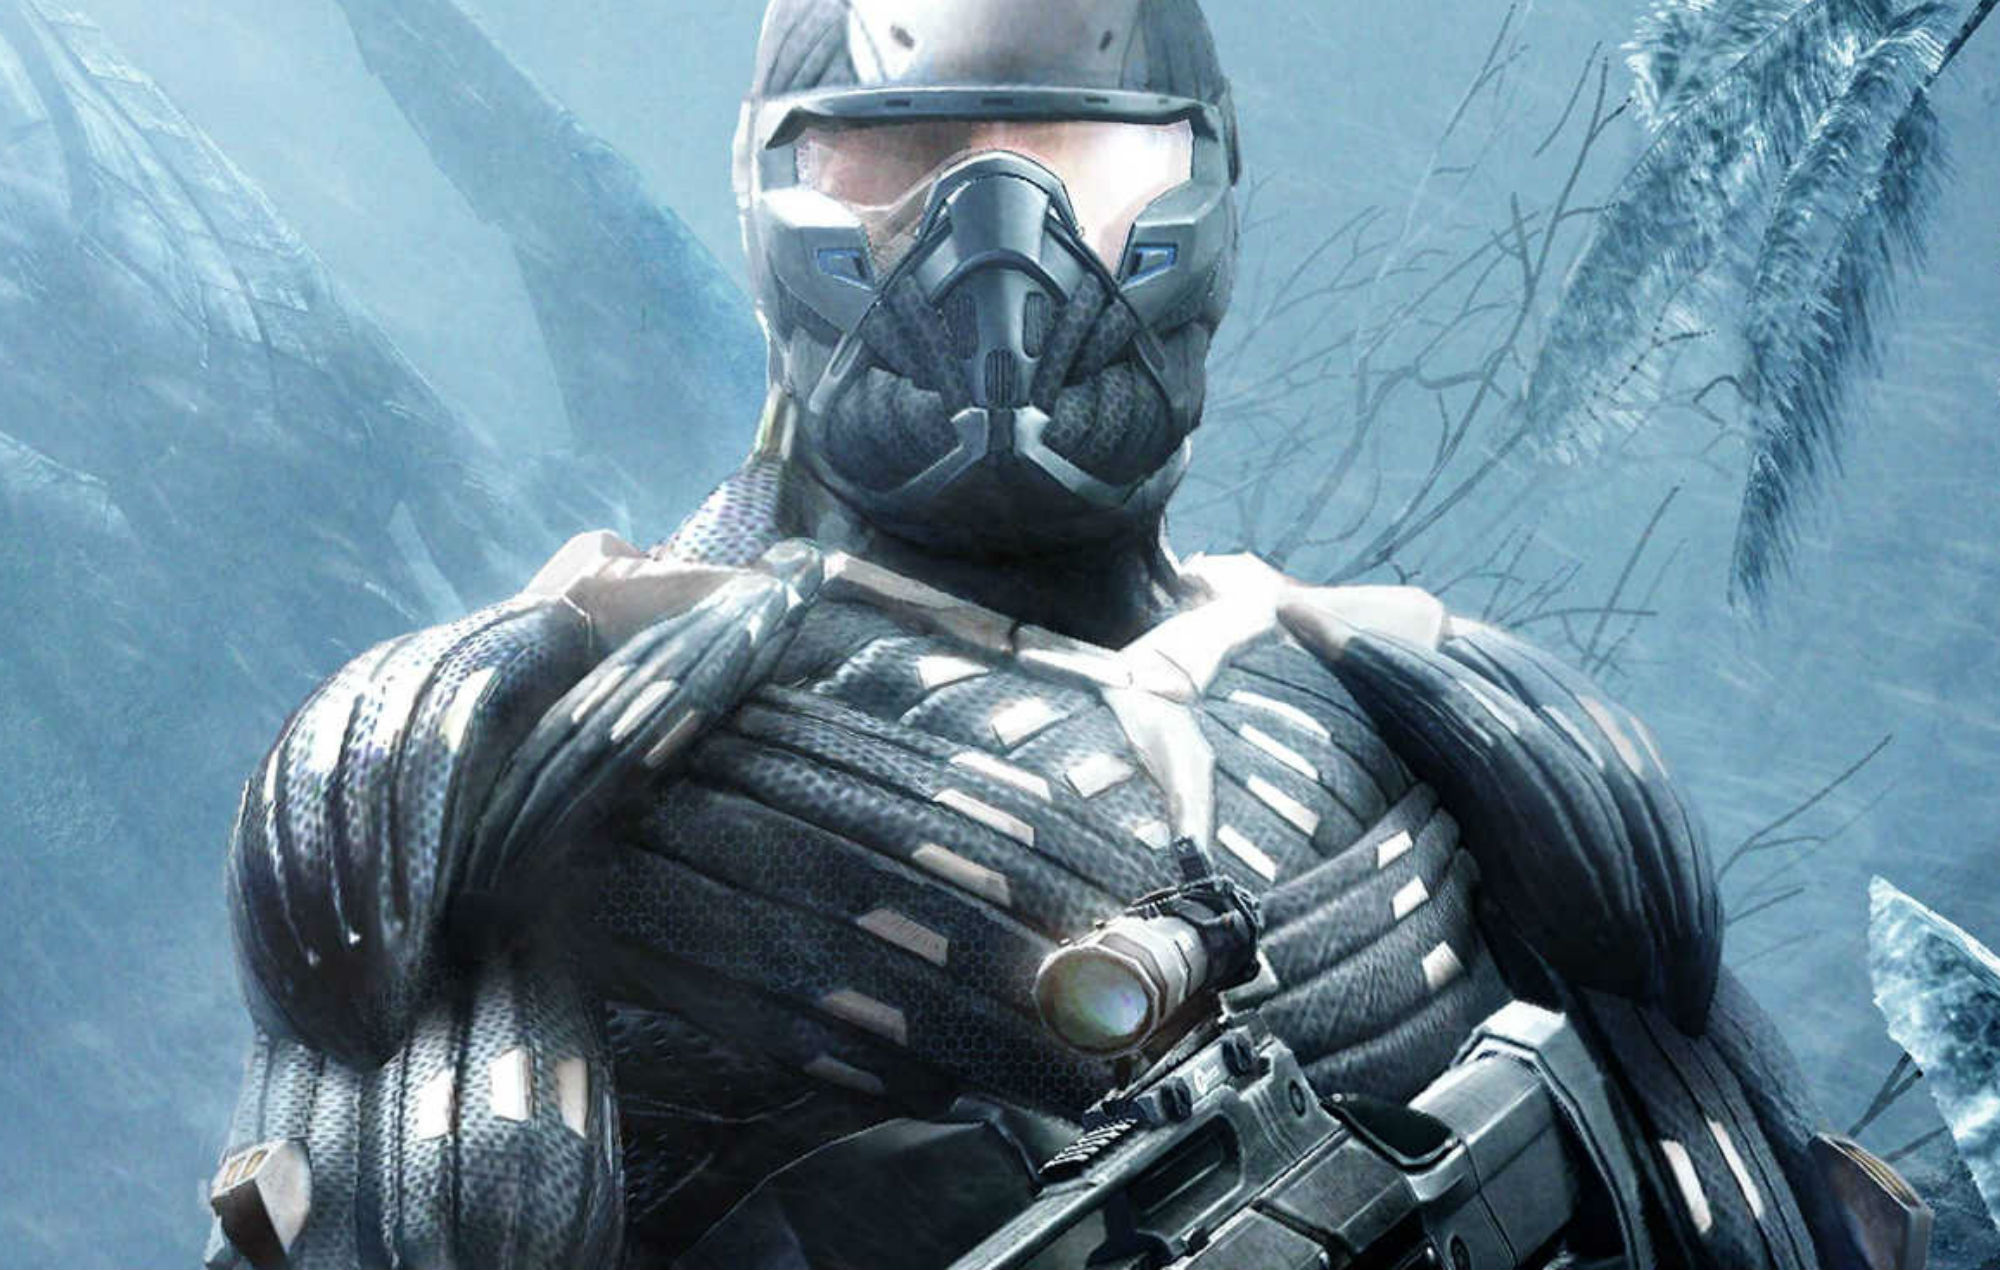 Crysis Remastered patch promises a performance boost on high-end PCs